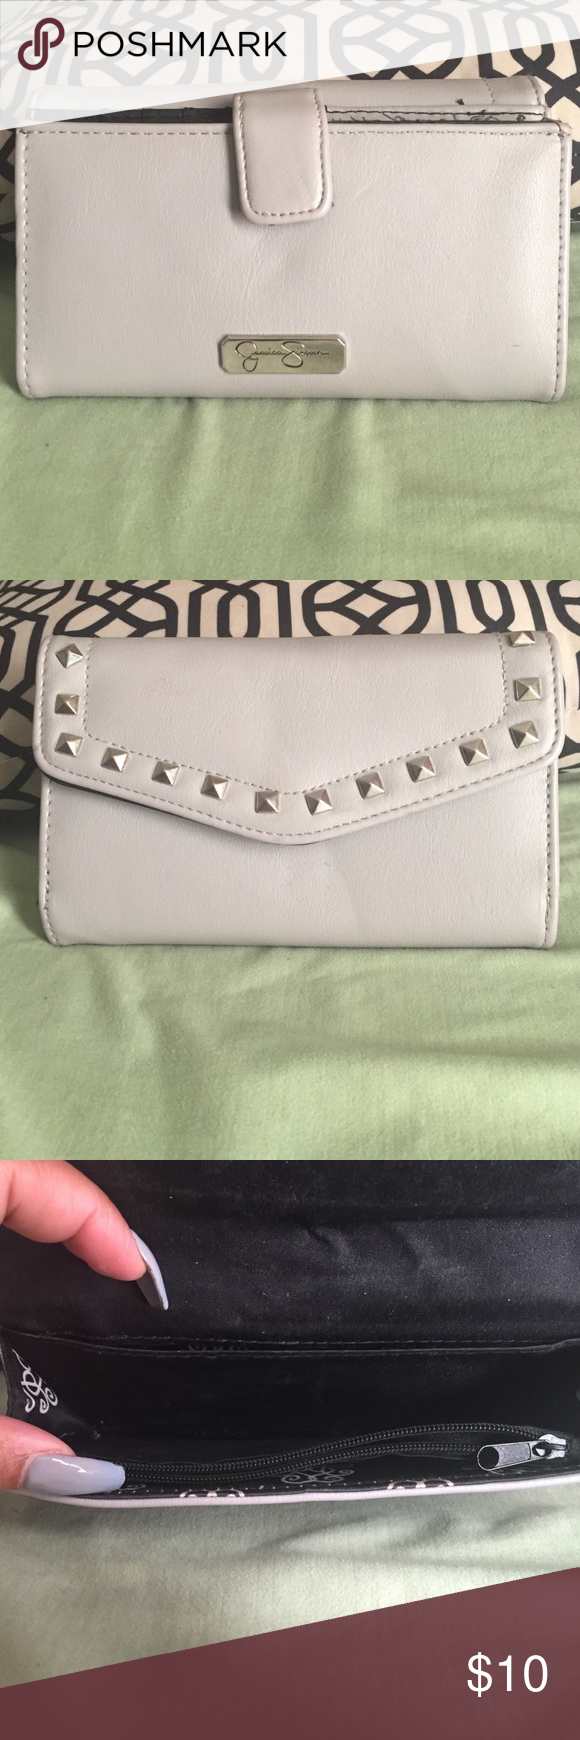 Jessica Simpson wallet Grey with black interior silver studs Jessica Simpson Bags Wallets